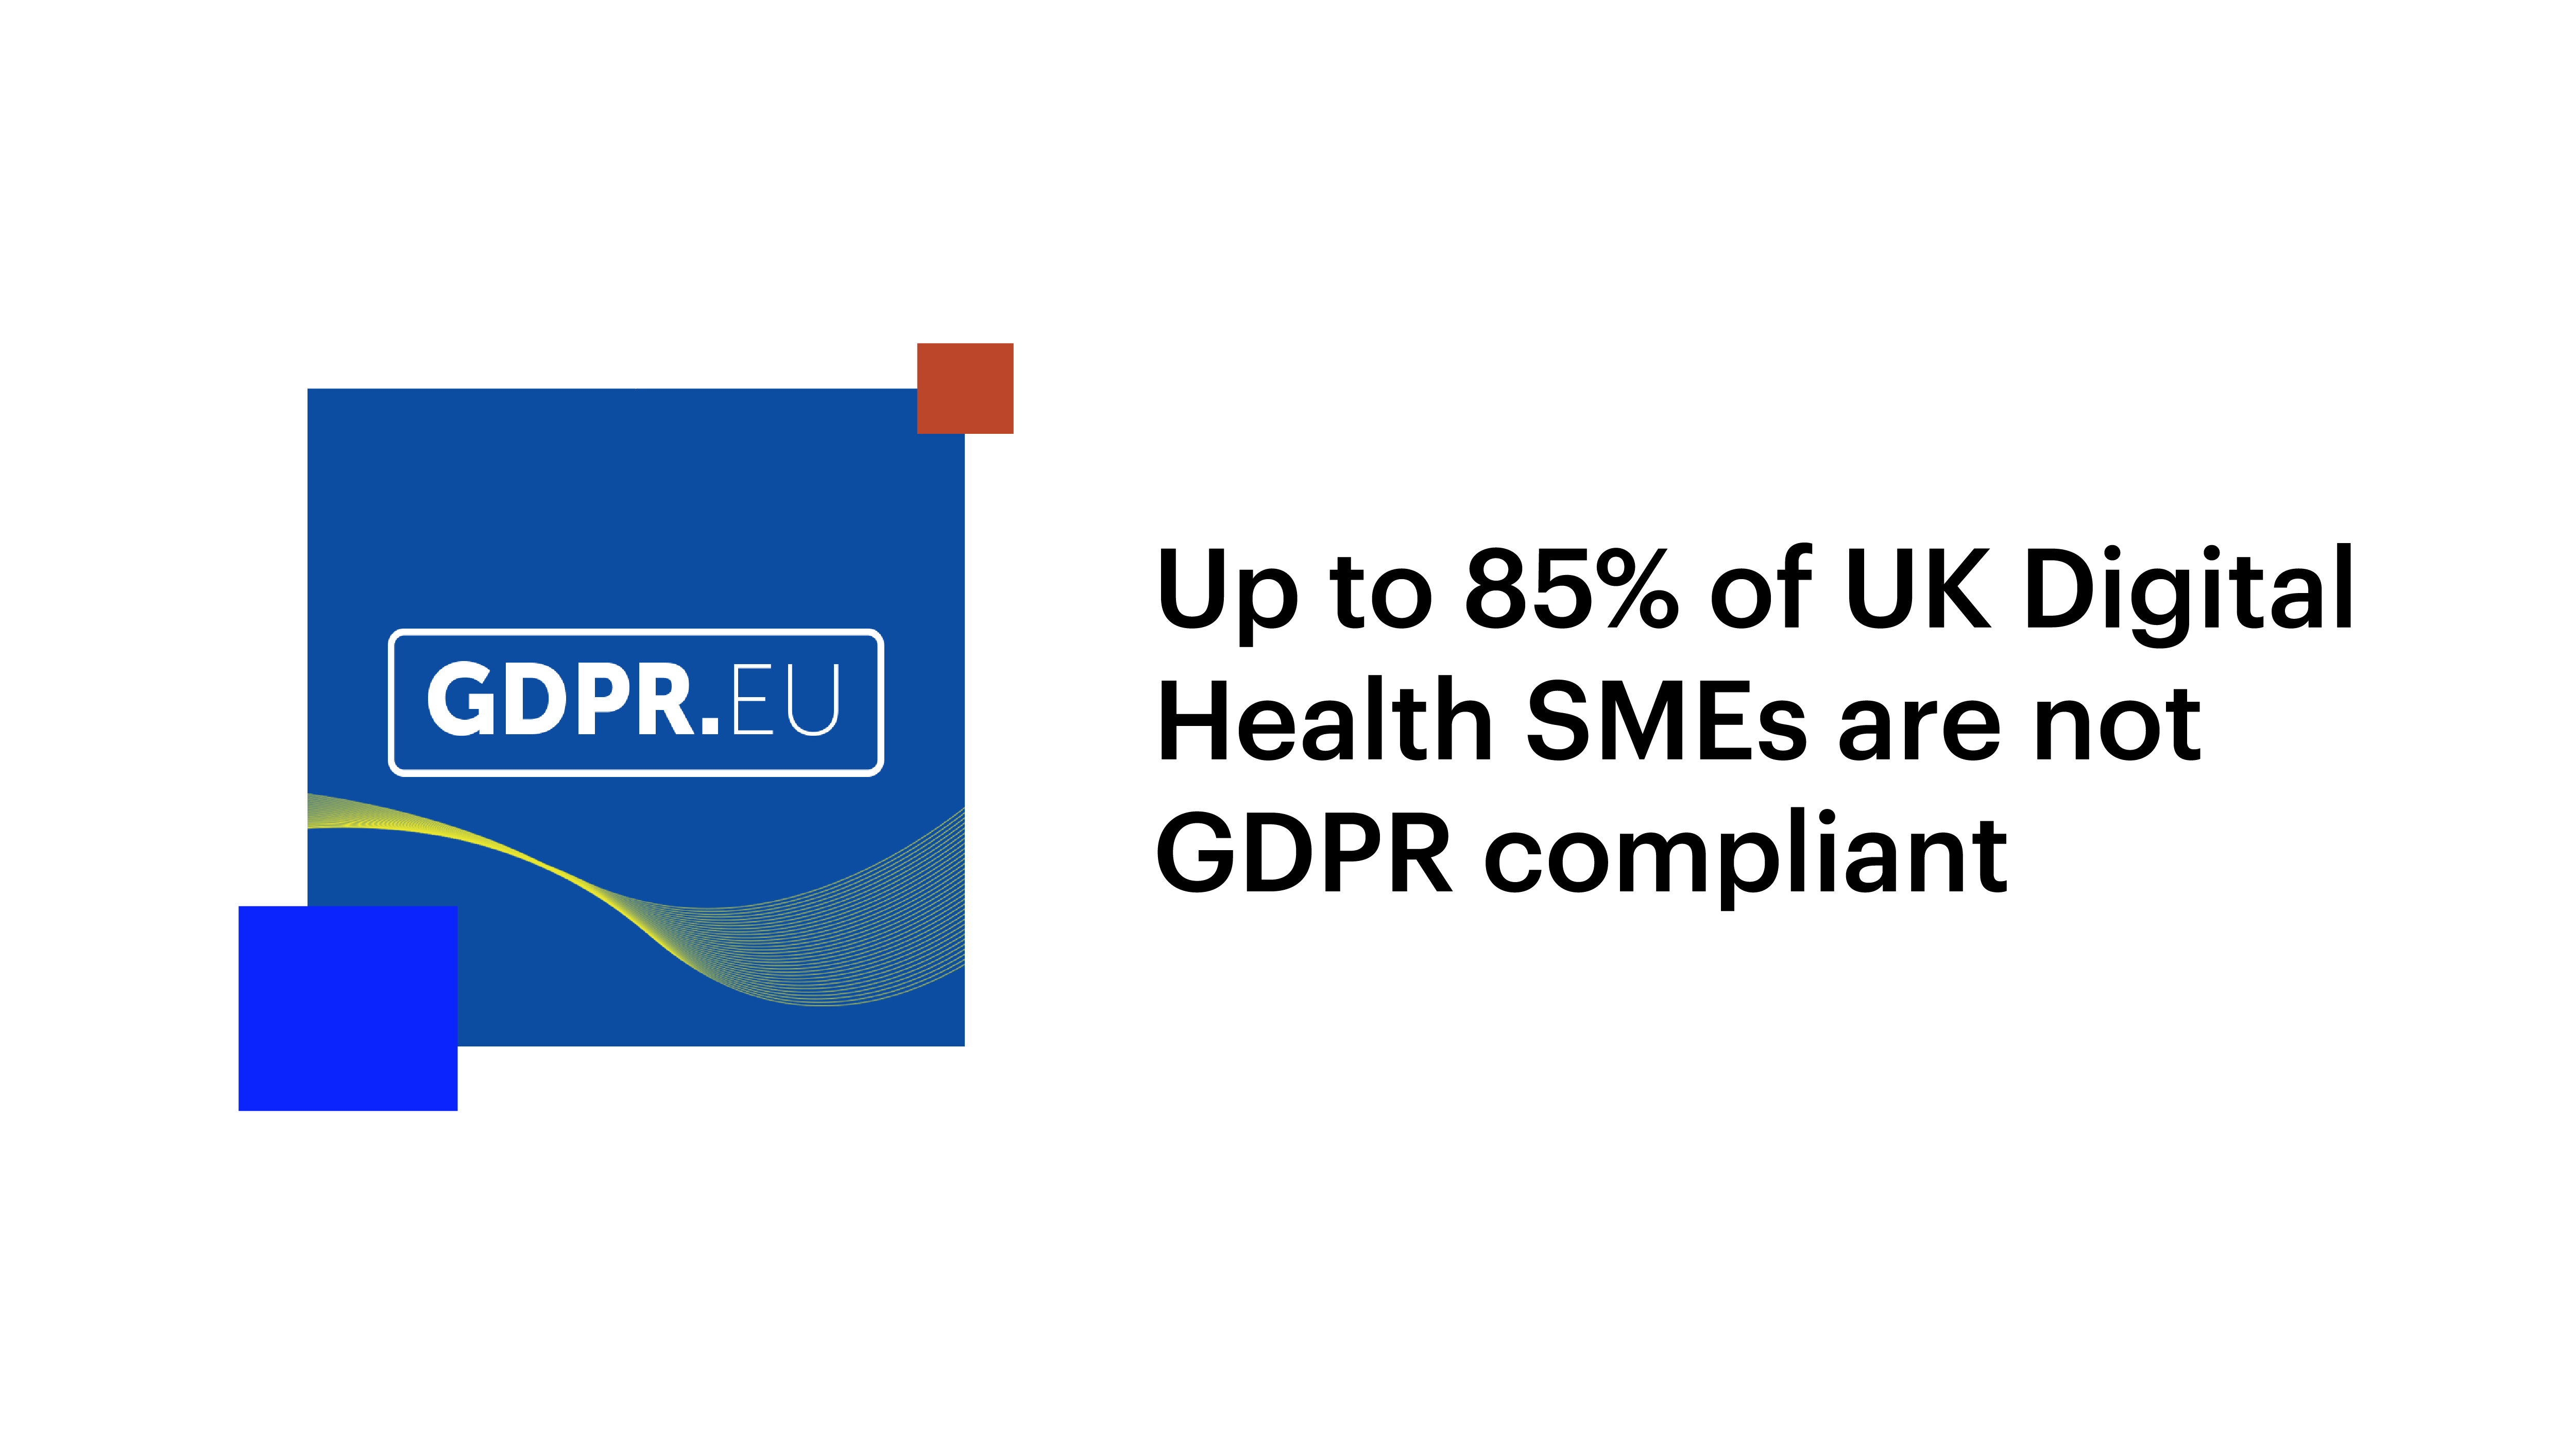 Up to 85% of UK Digital Health SMEs are not GDPR compliant. Image shows the GDPR website logo.